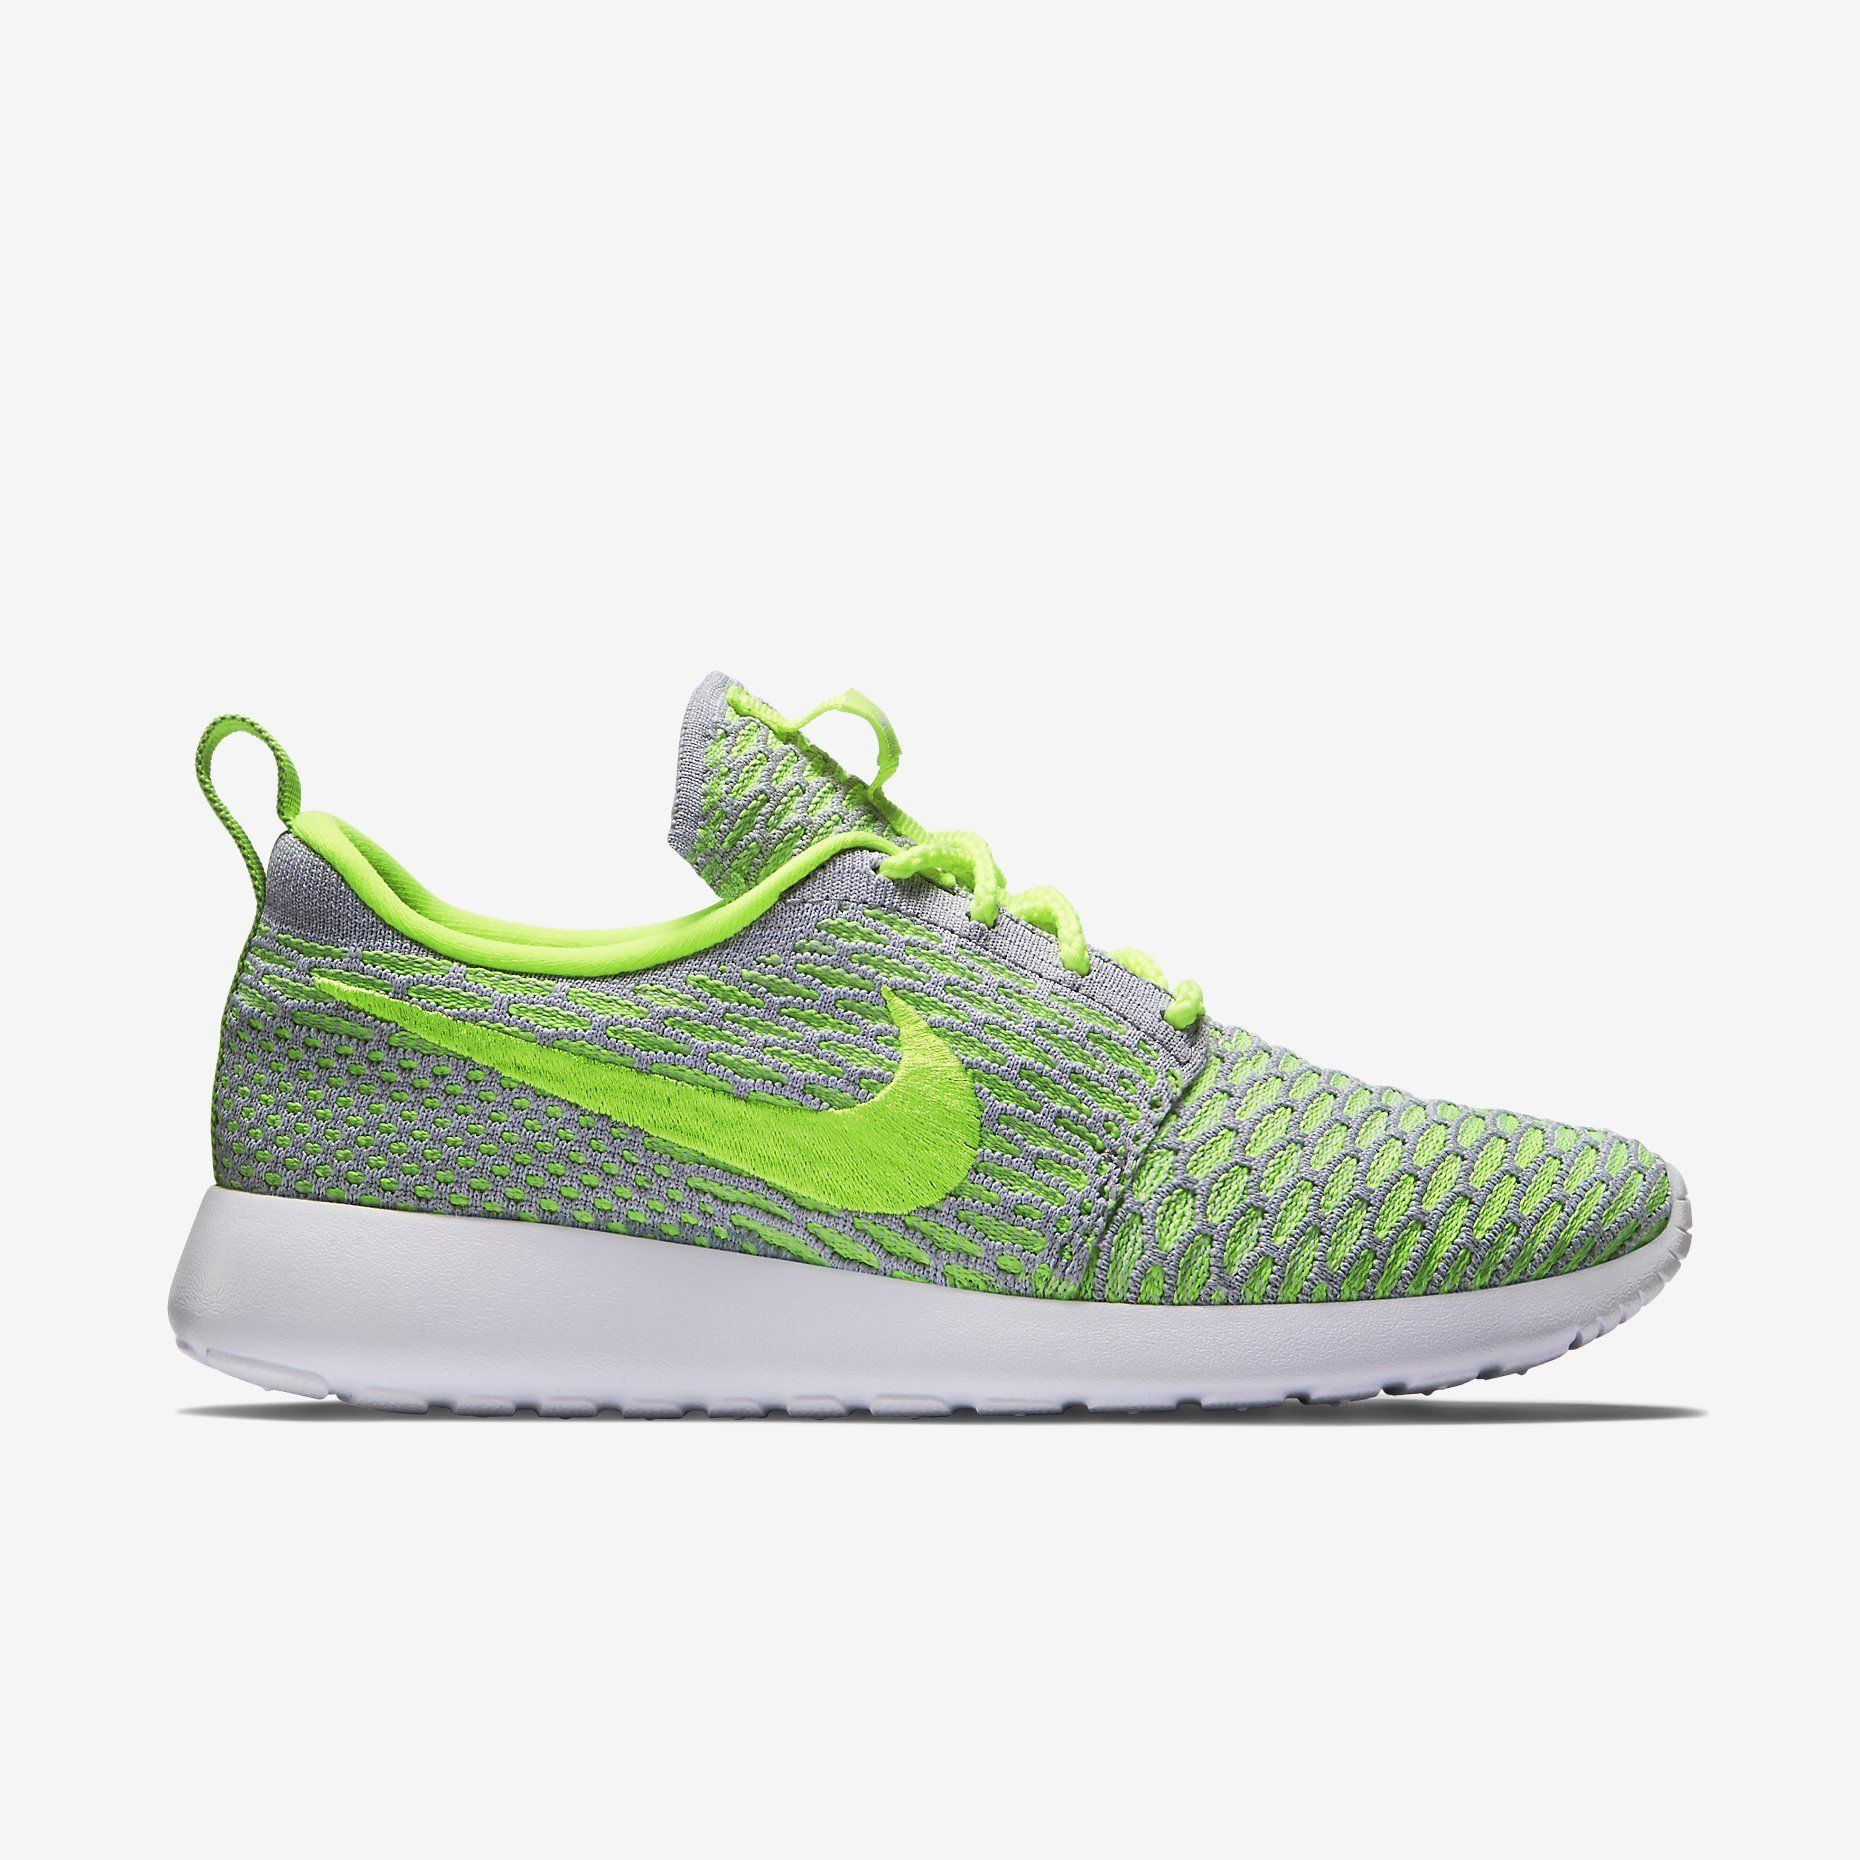 ce402a540d9a 2014 cheap nike shoes for sale info collection off big discount.New nike  roshe run